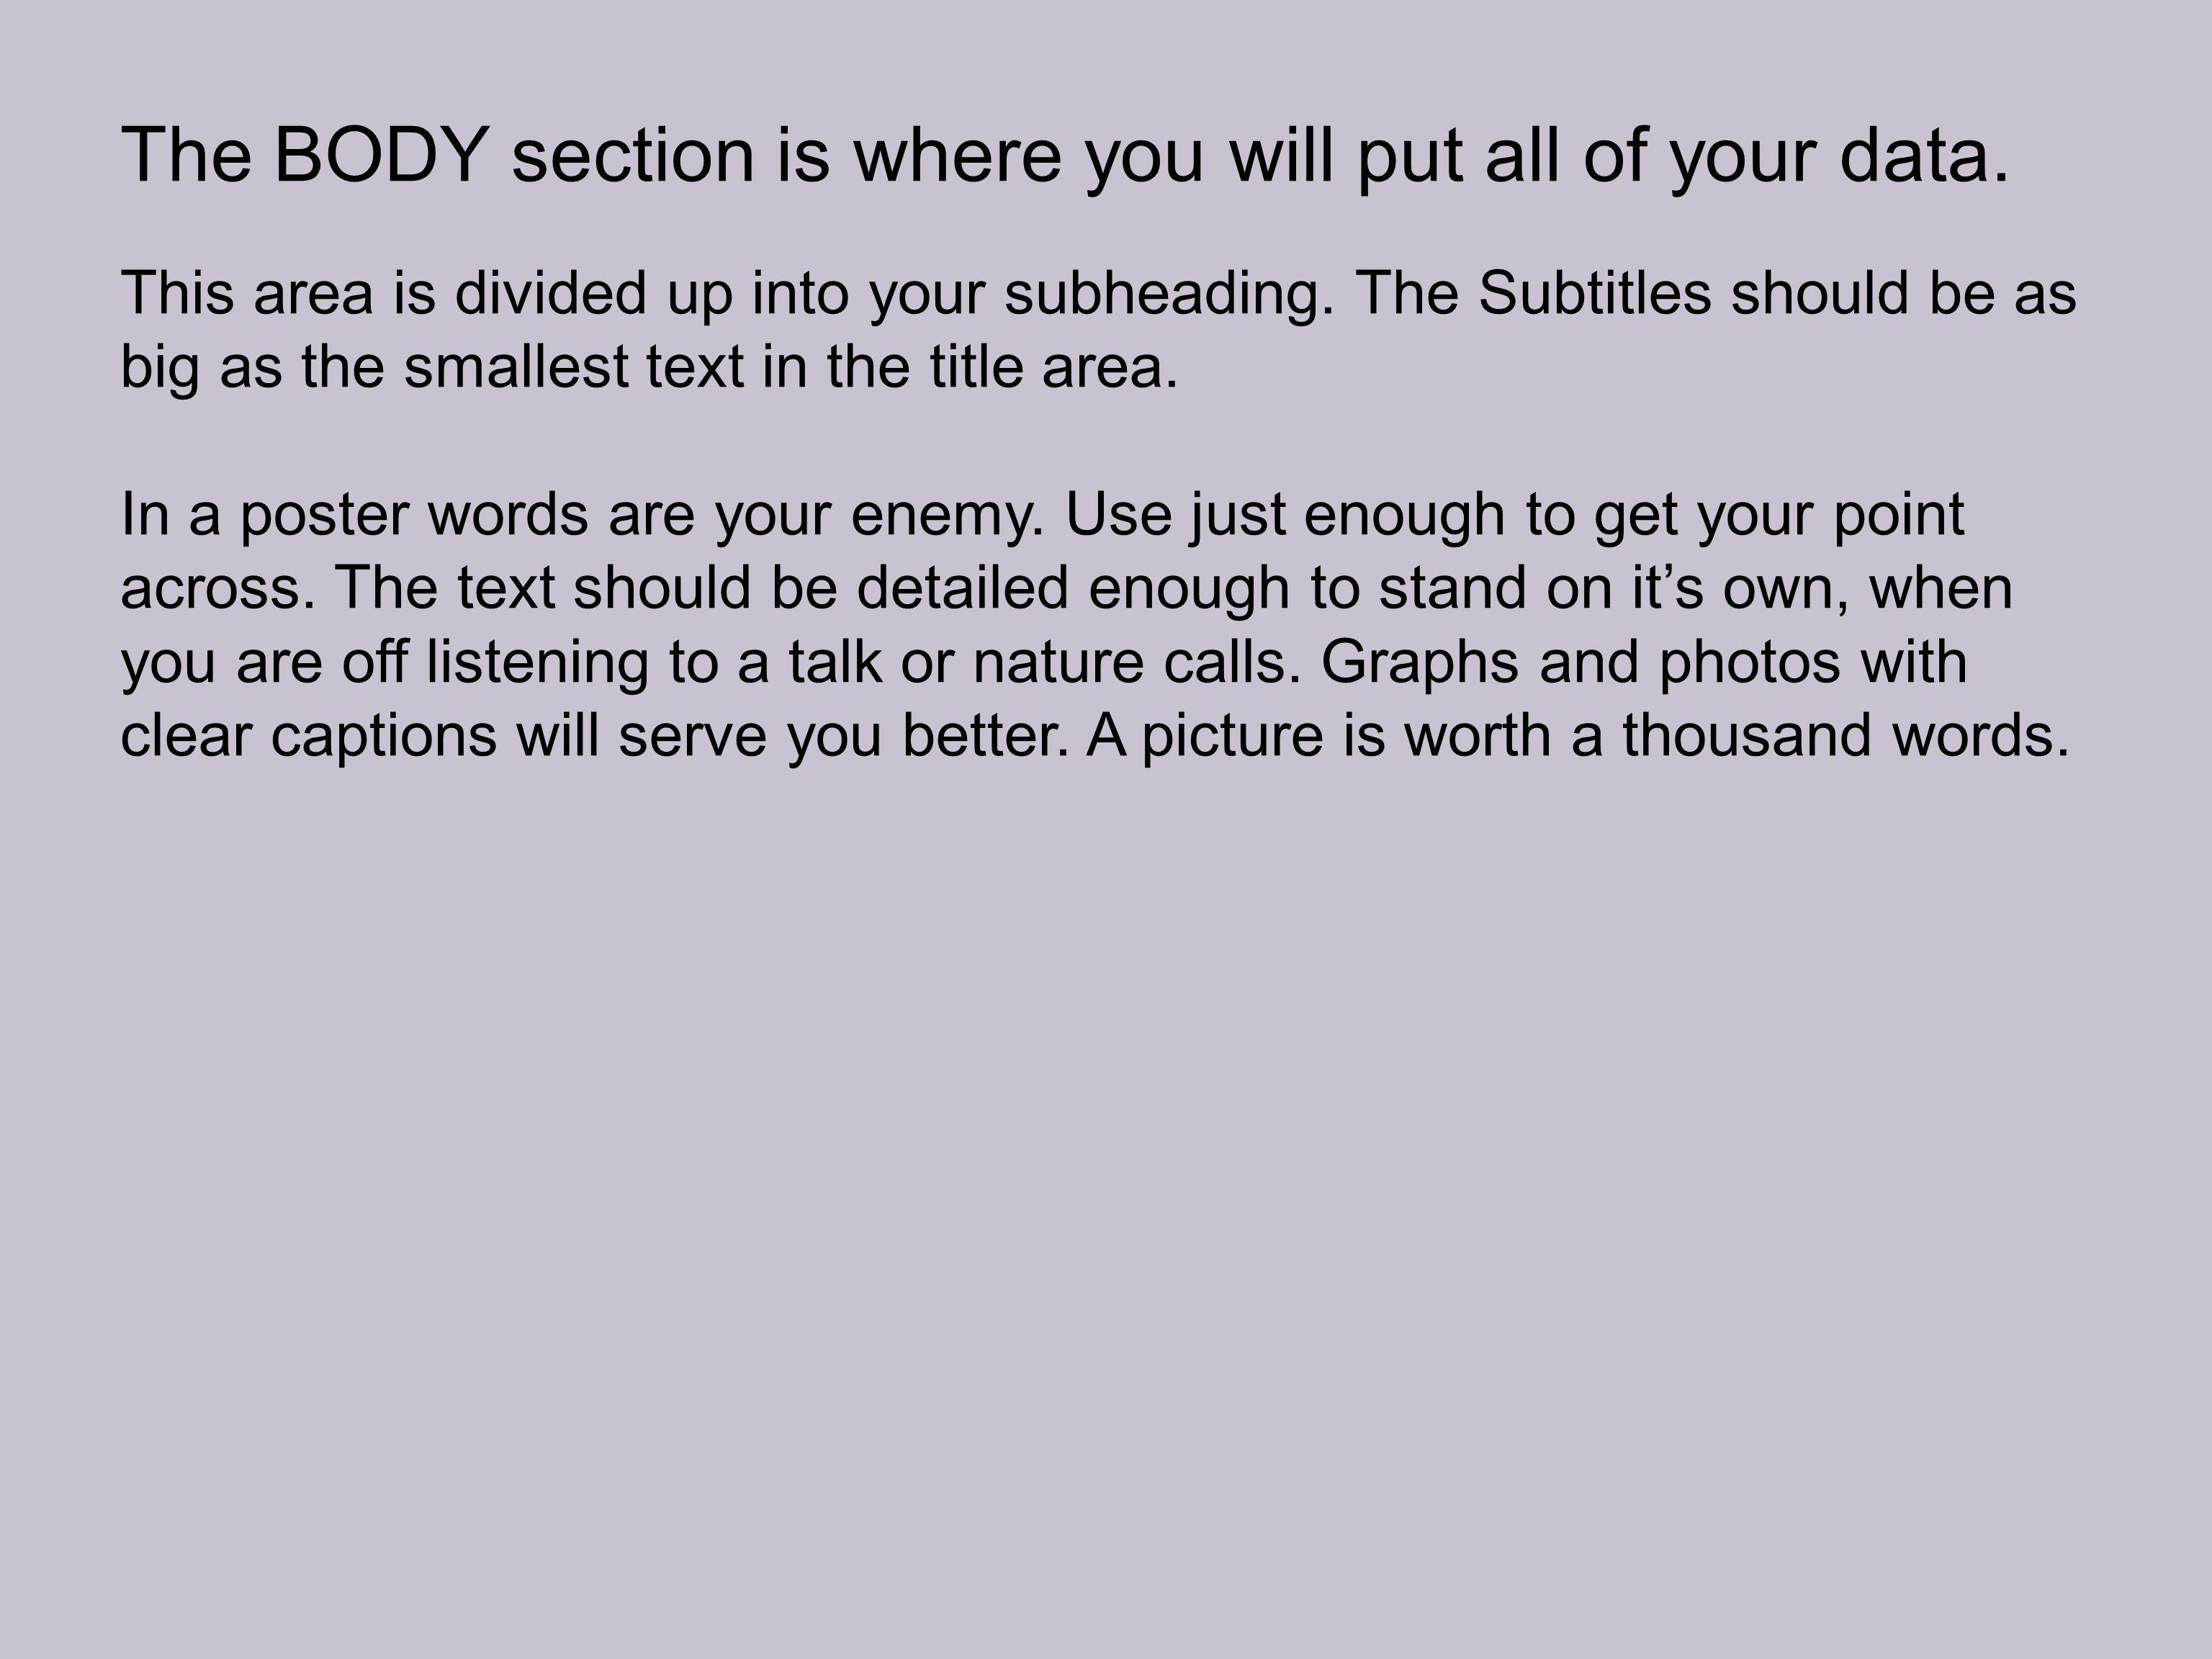 The BODY section is where you will put all of your data.